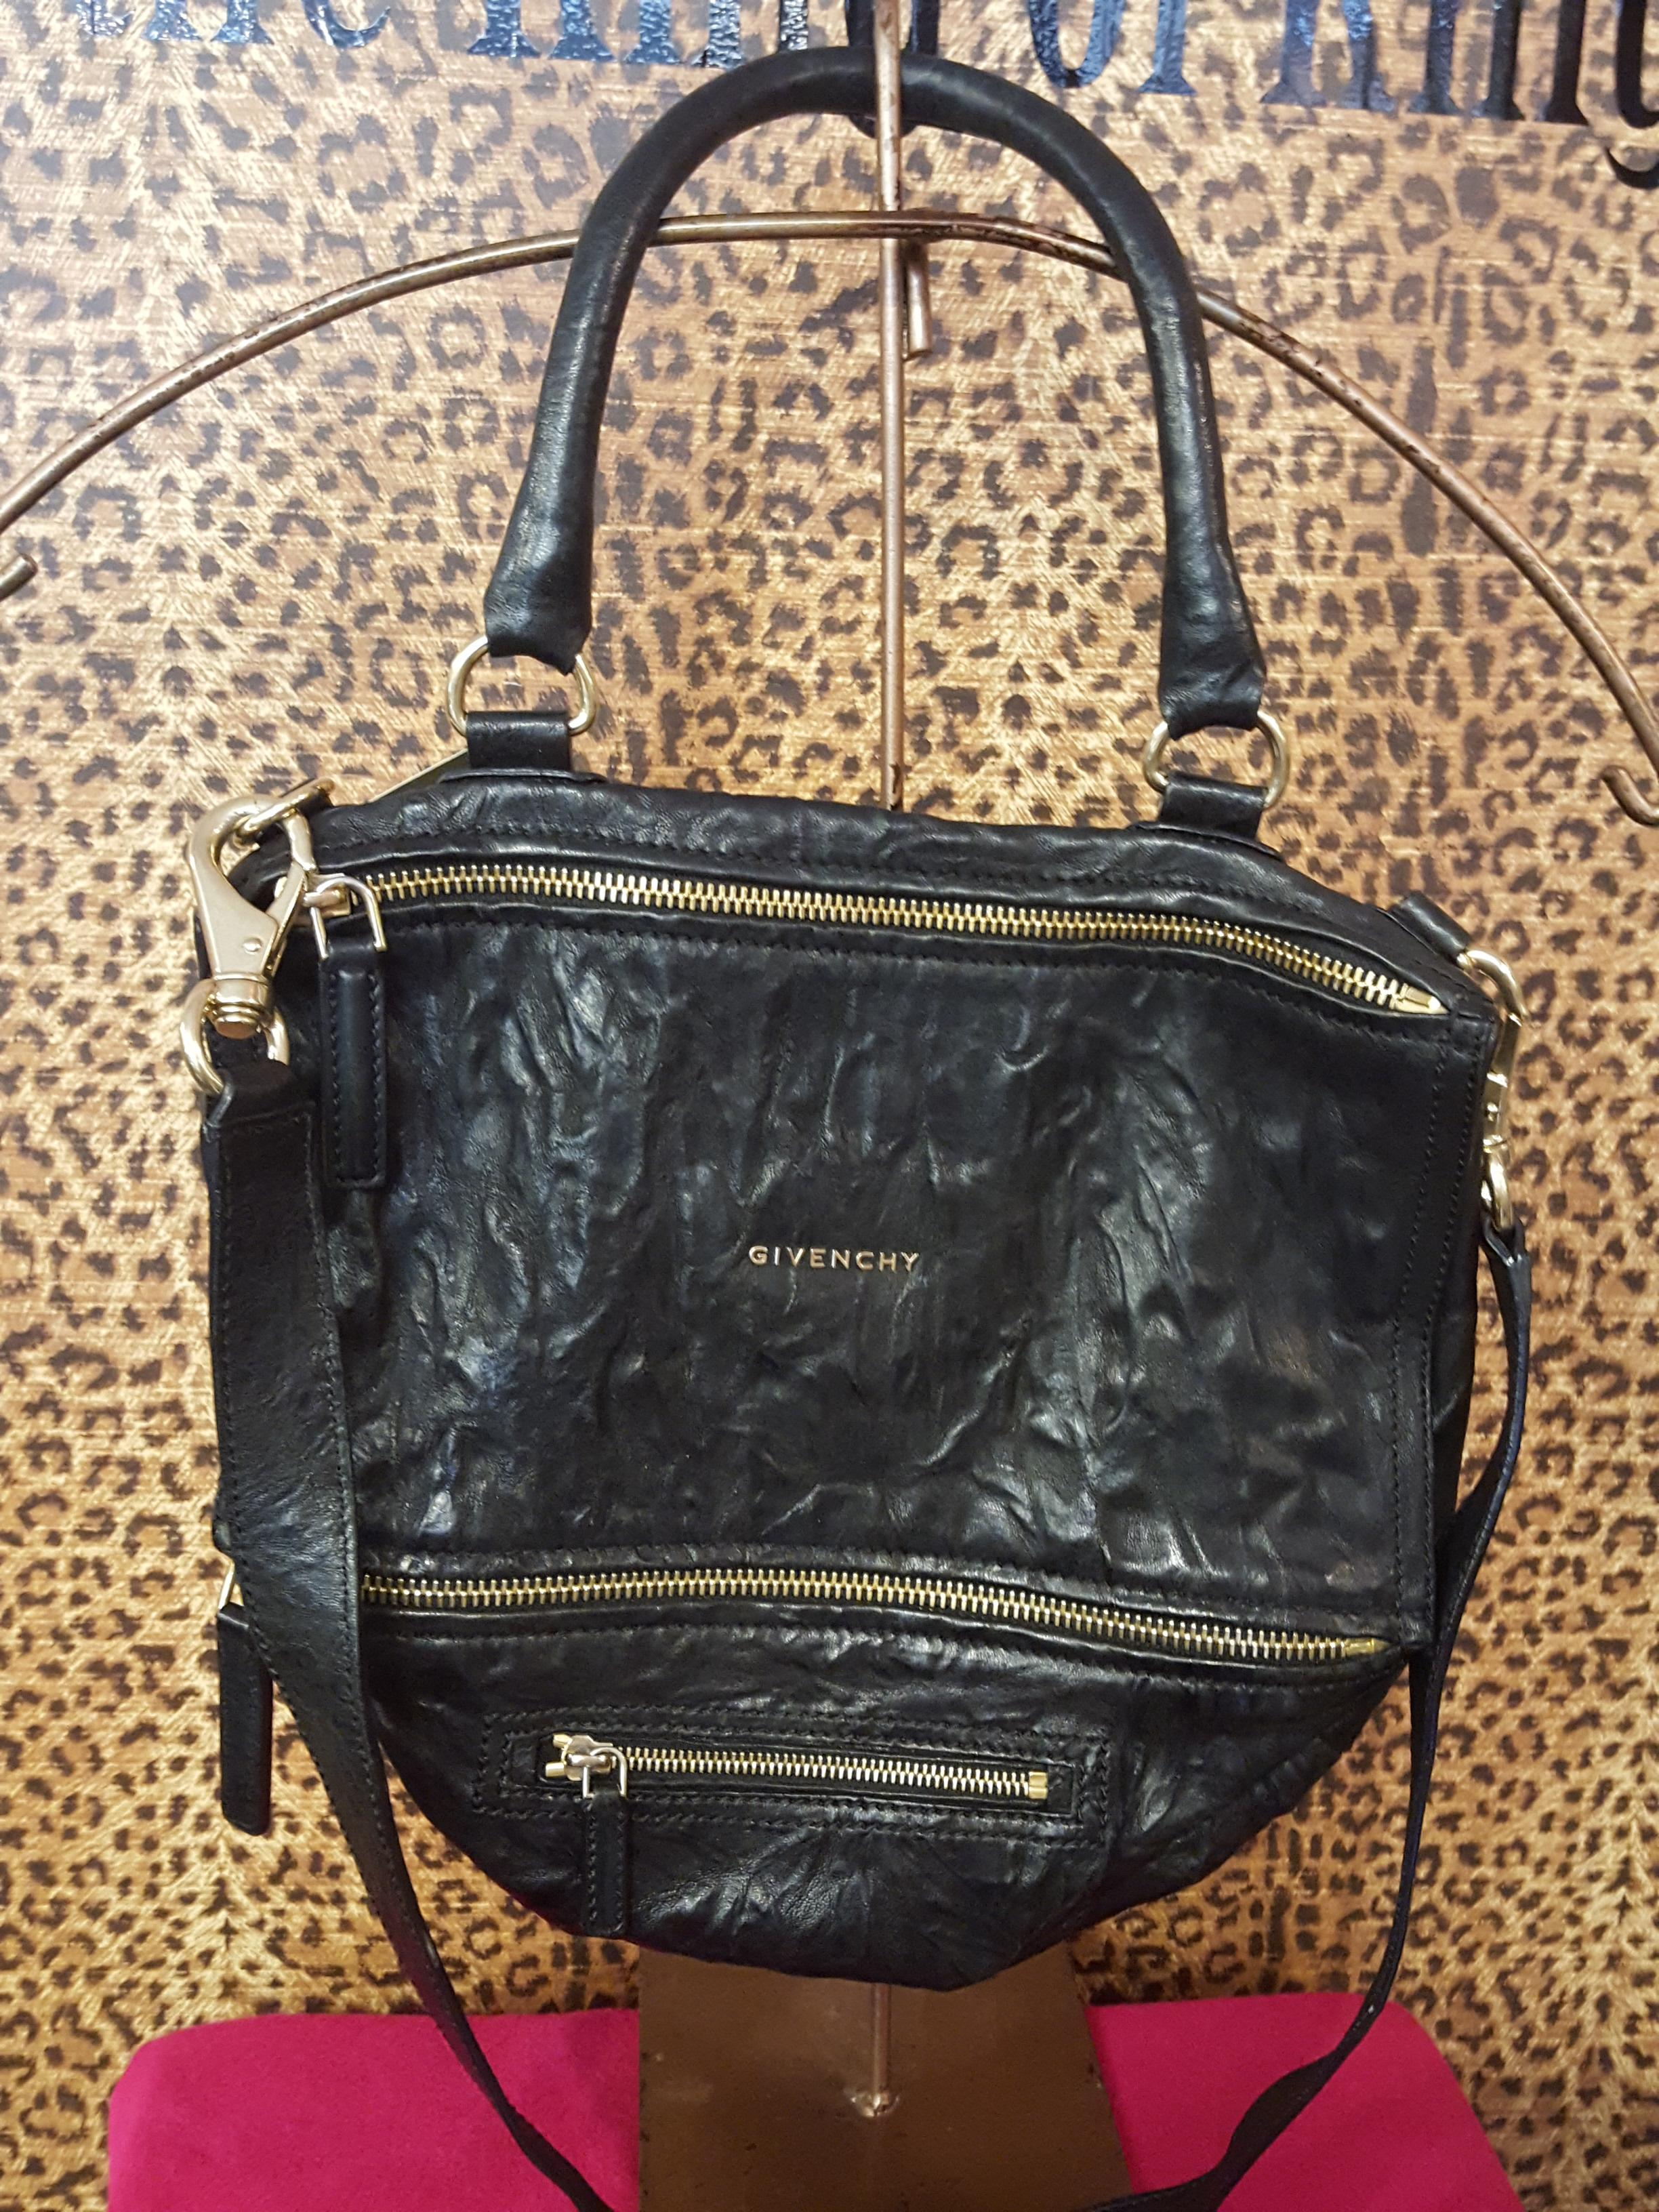 Givenchy~ Black, Distressed Leather, Purses, Handbags Price: $1054.71